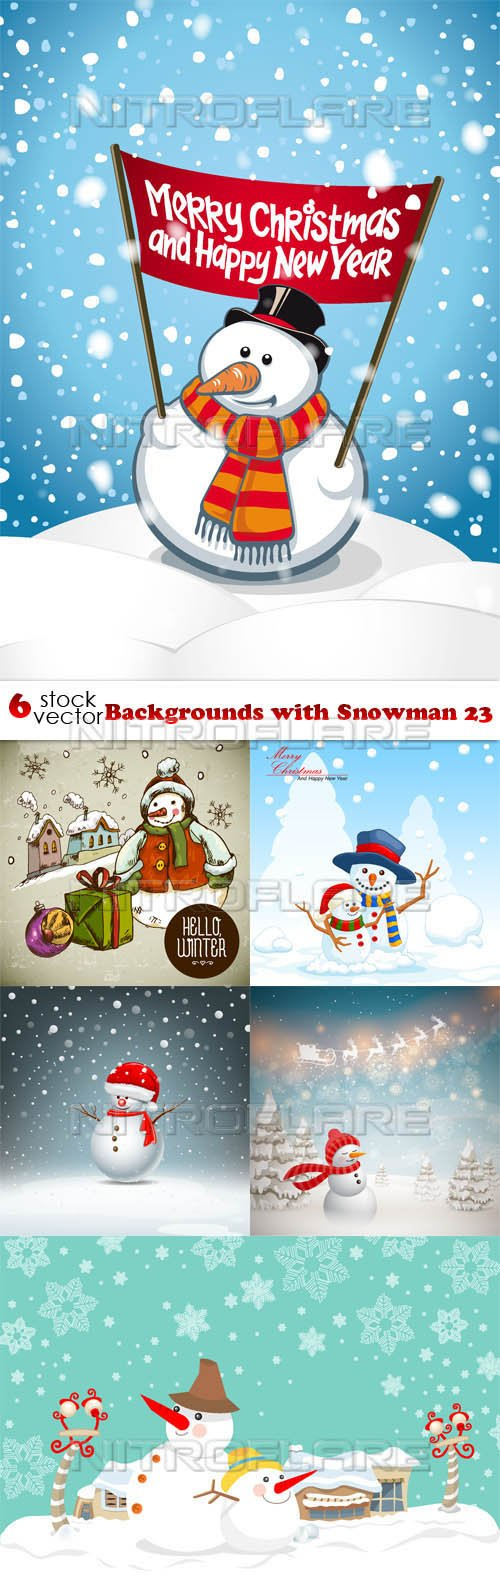 Vectors - Backgrounds with Snowman 23